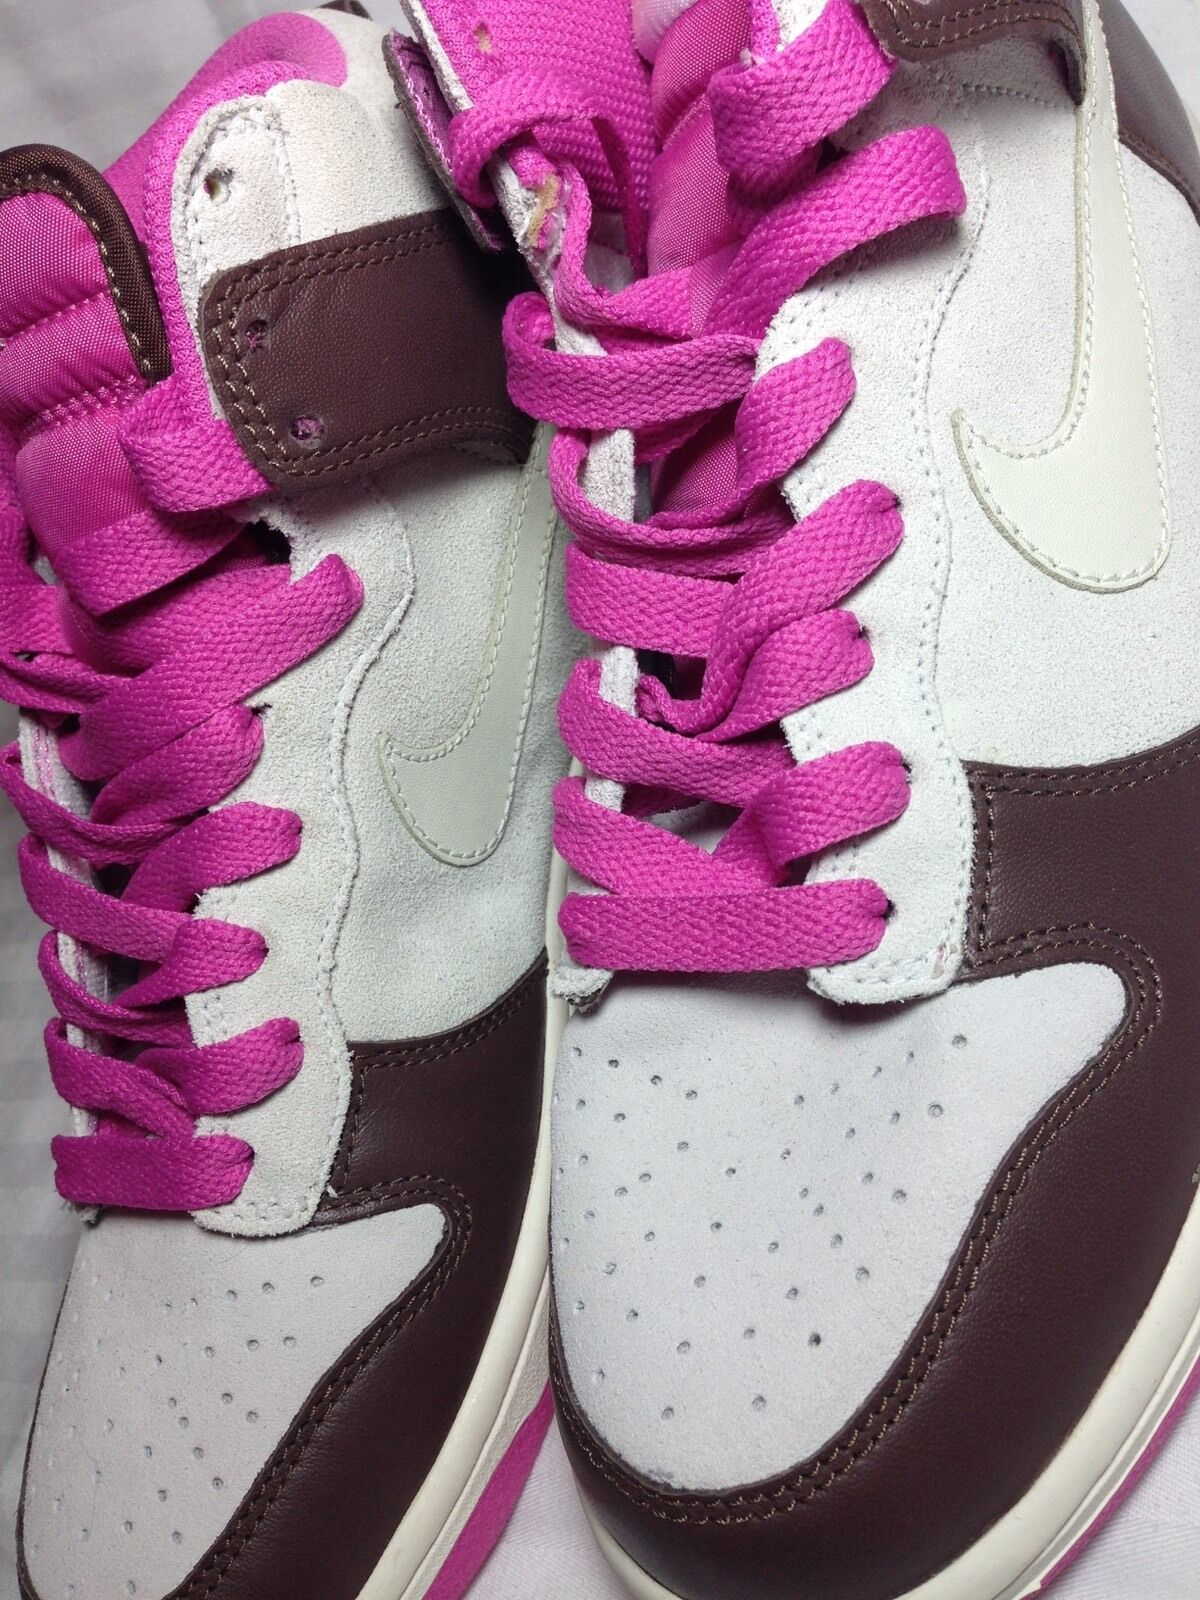 Nike Dunk High White Sail, Women's Size 9, New, Just Do It